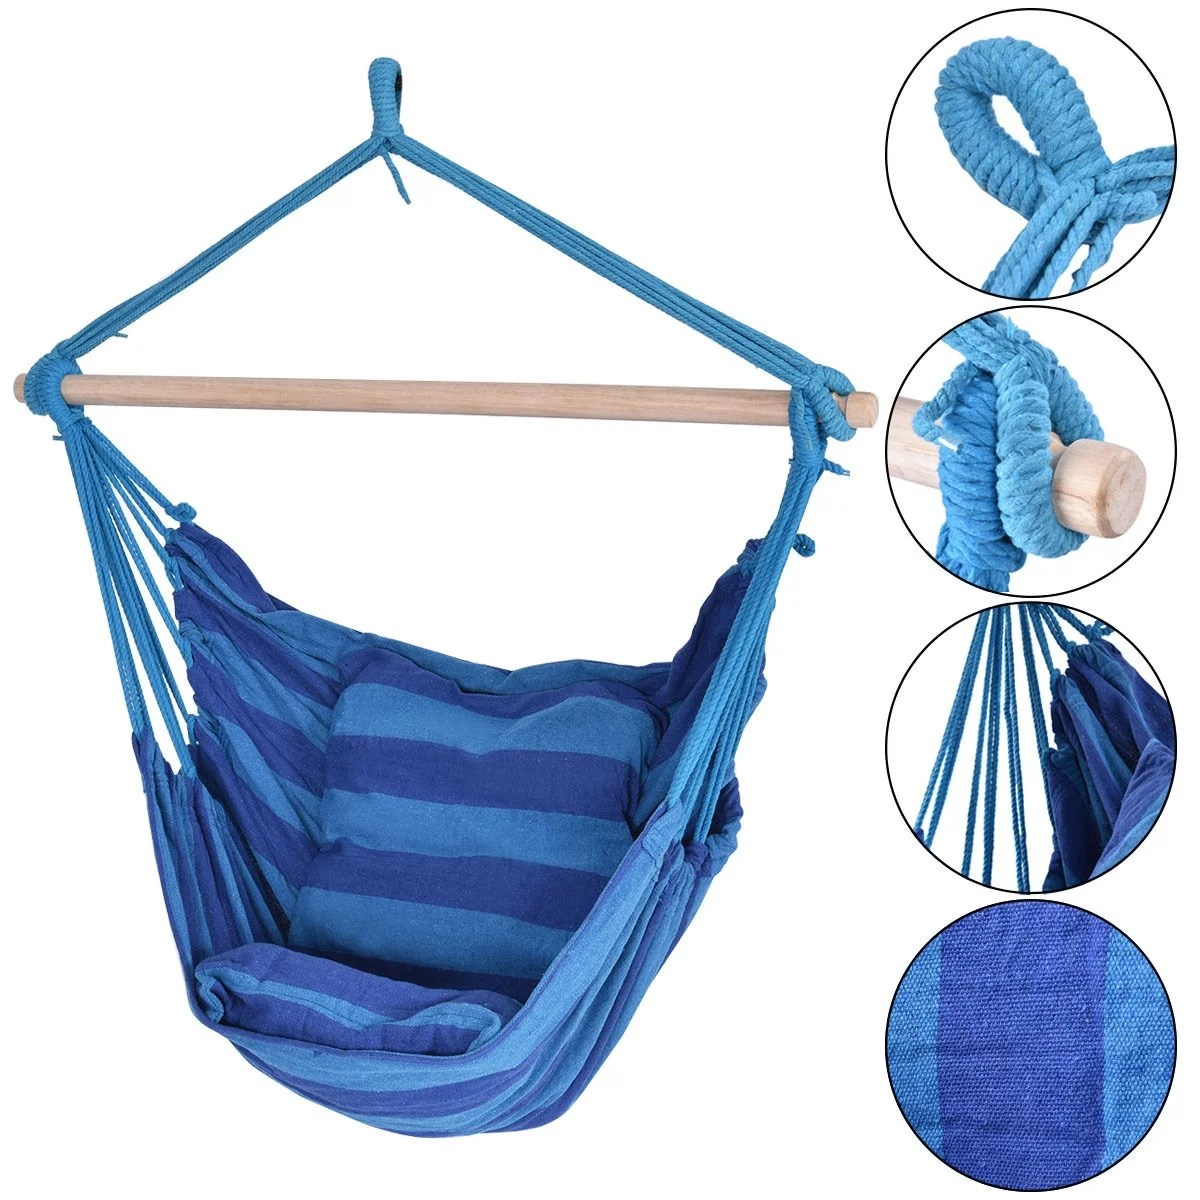 hanging chair home goods lazy boy gaming uk garden patio sale shop our best deals costway hammock rope porch yard tree air swing outdoor blue